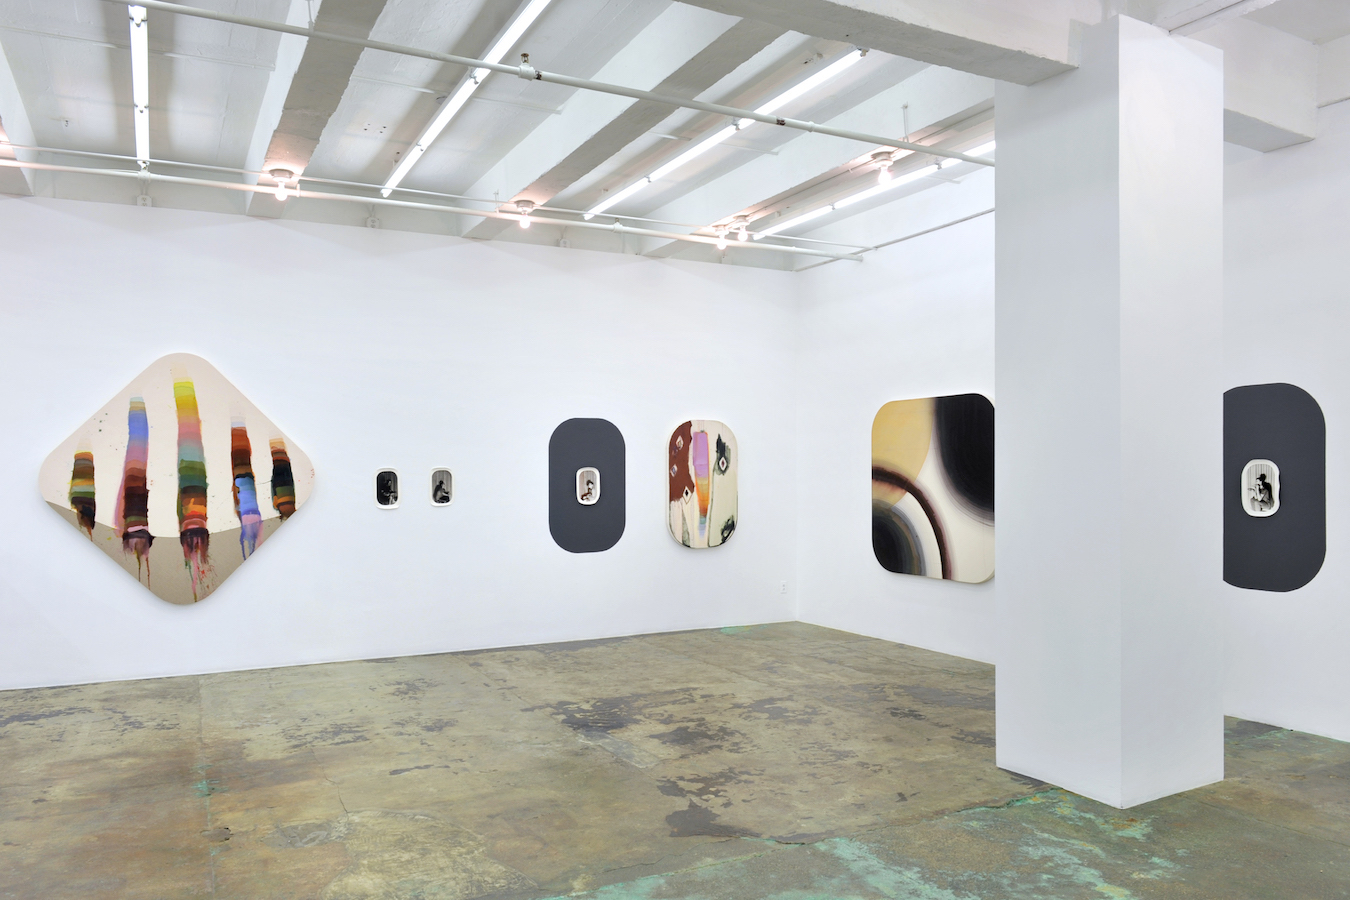 Installation view: east and south walls